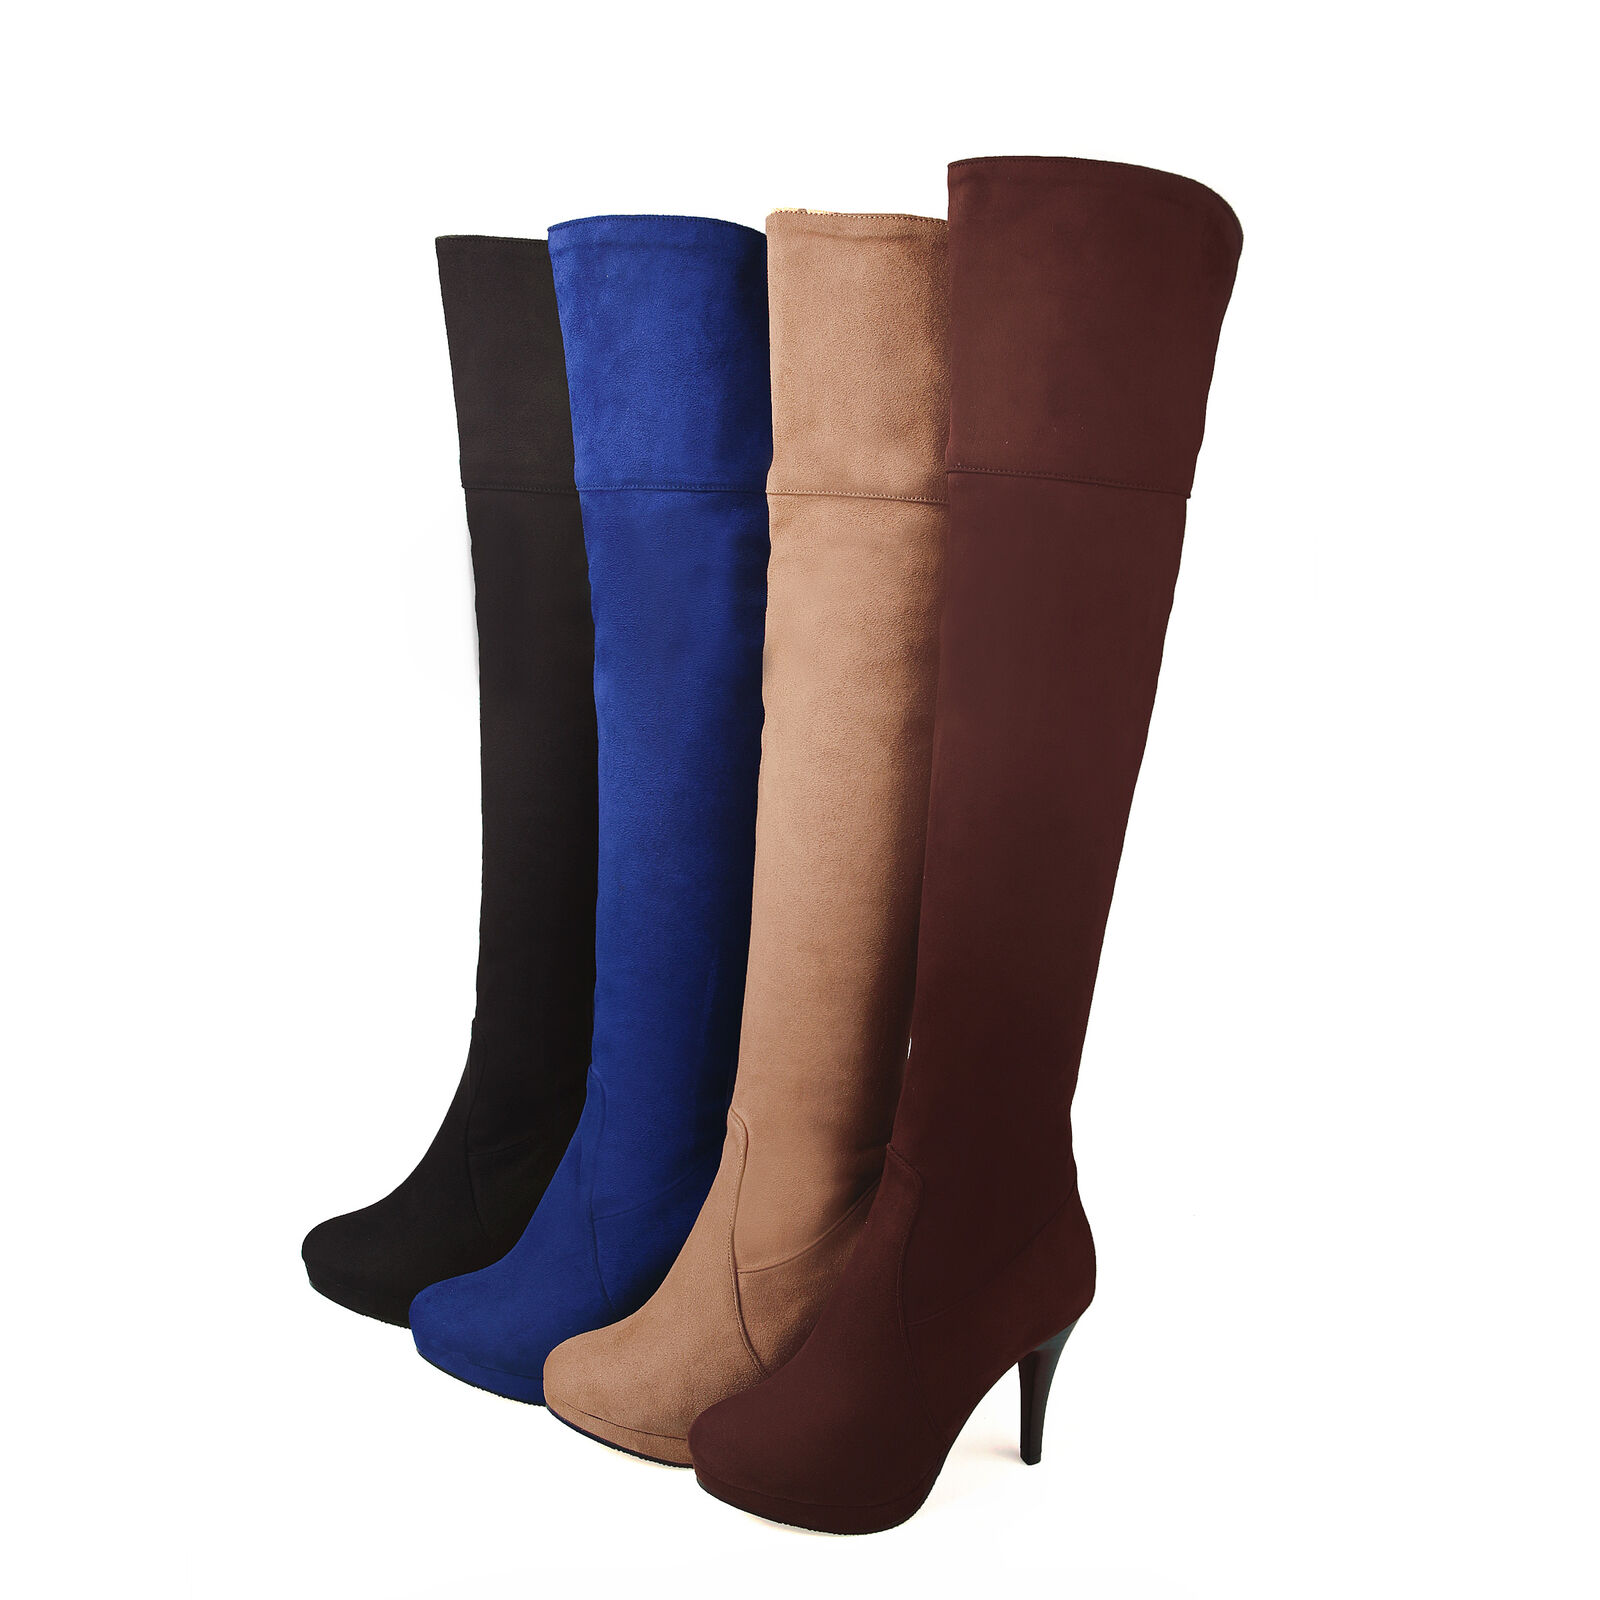 Ladies High Heels Side Zipper Over The Knee High Boots Cuffed Suede shoes US 8